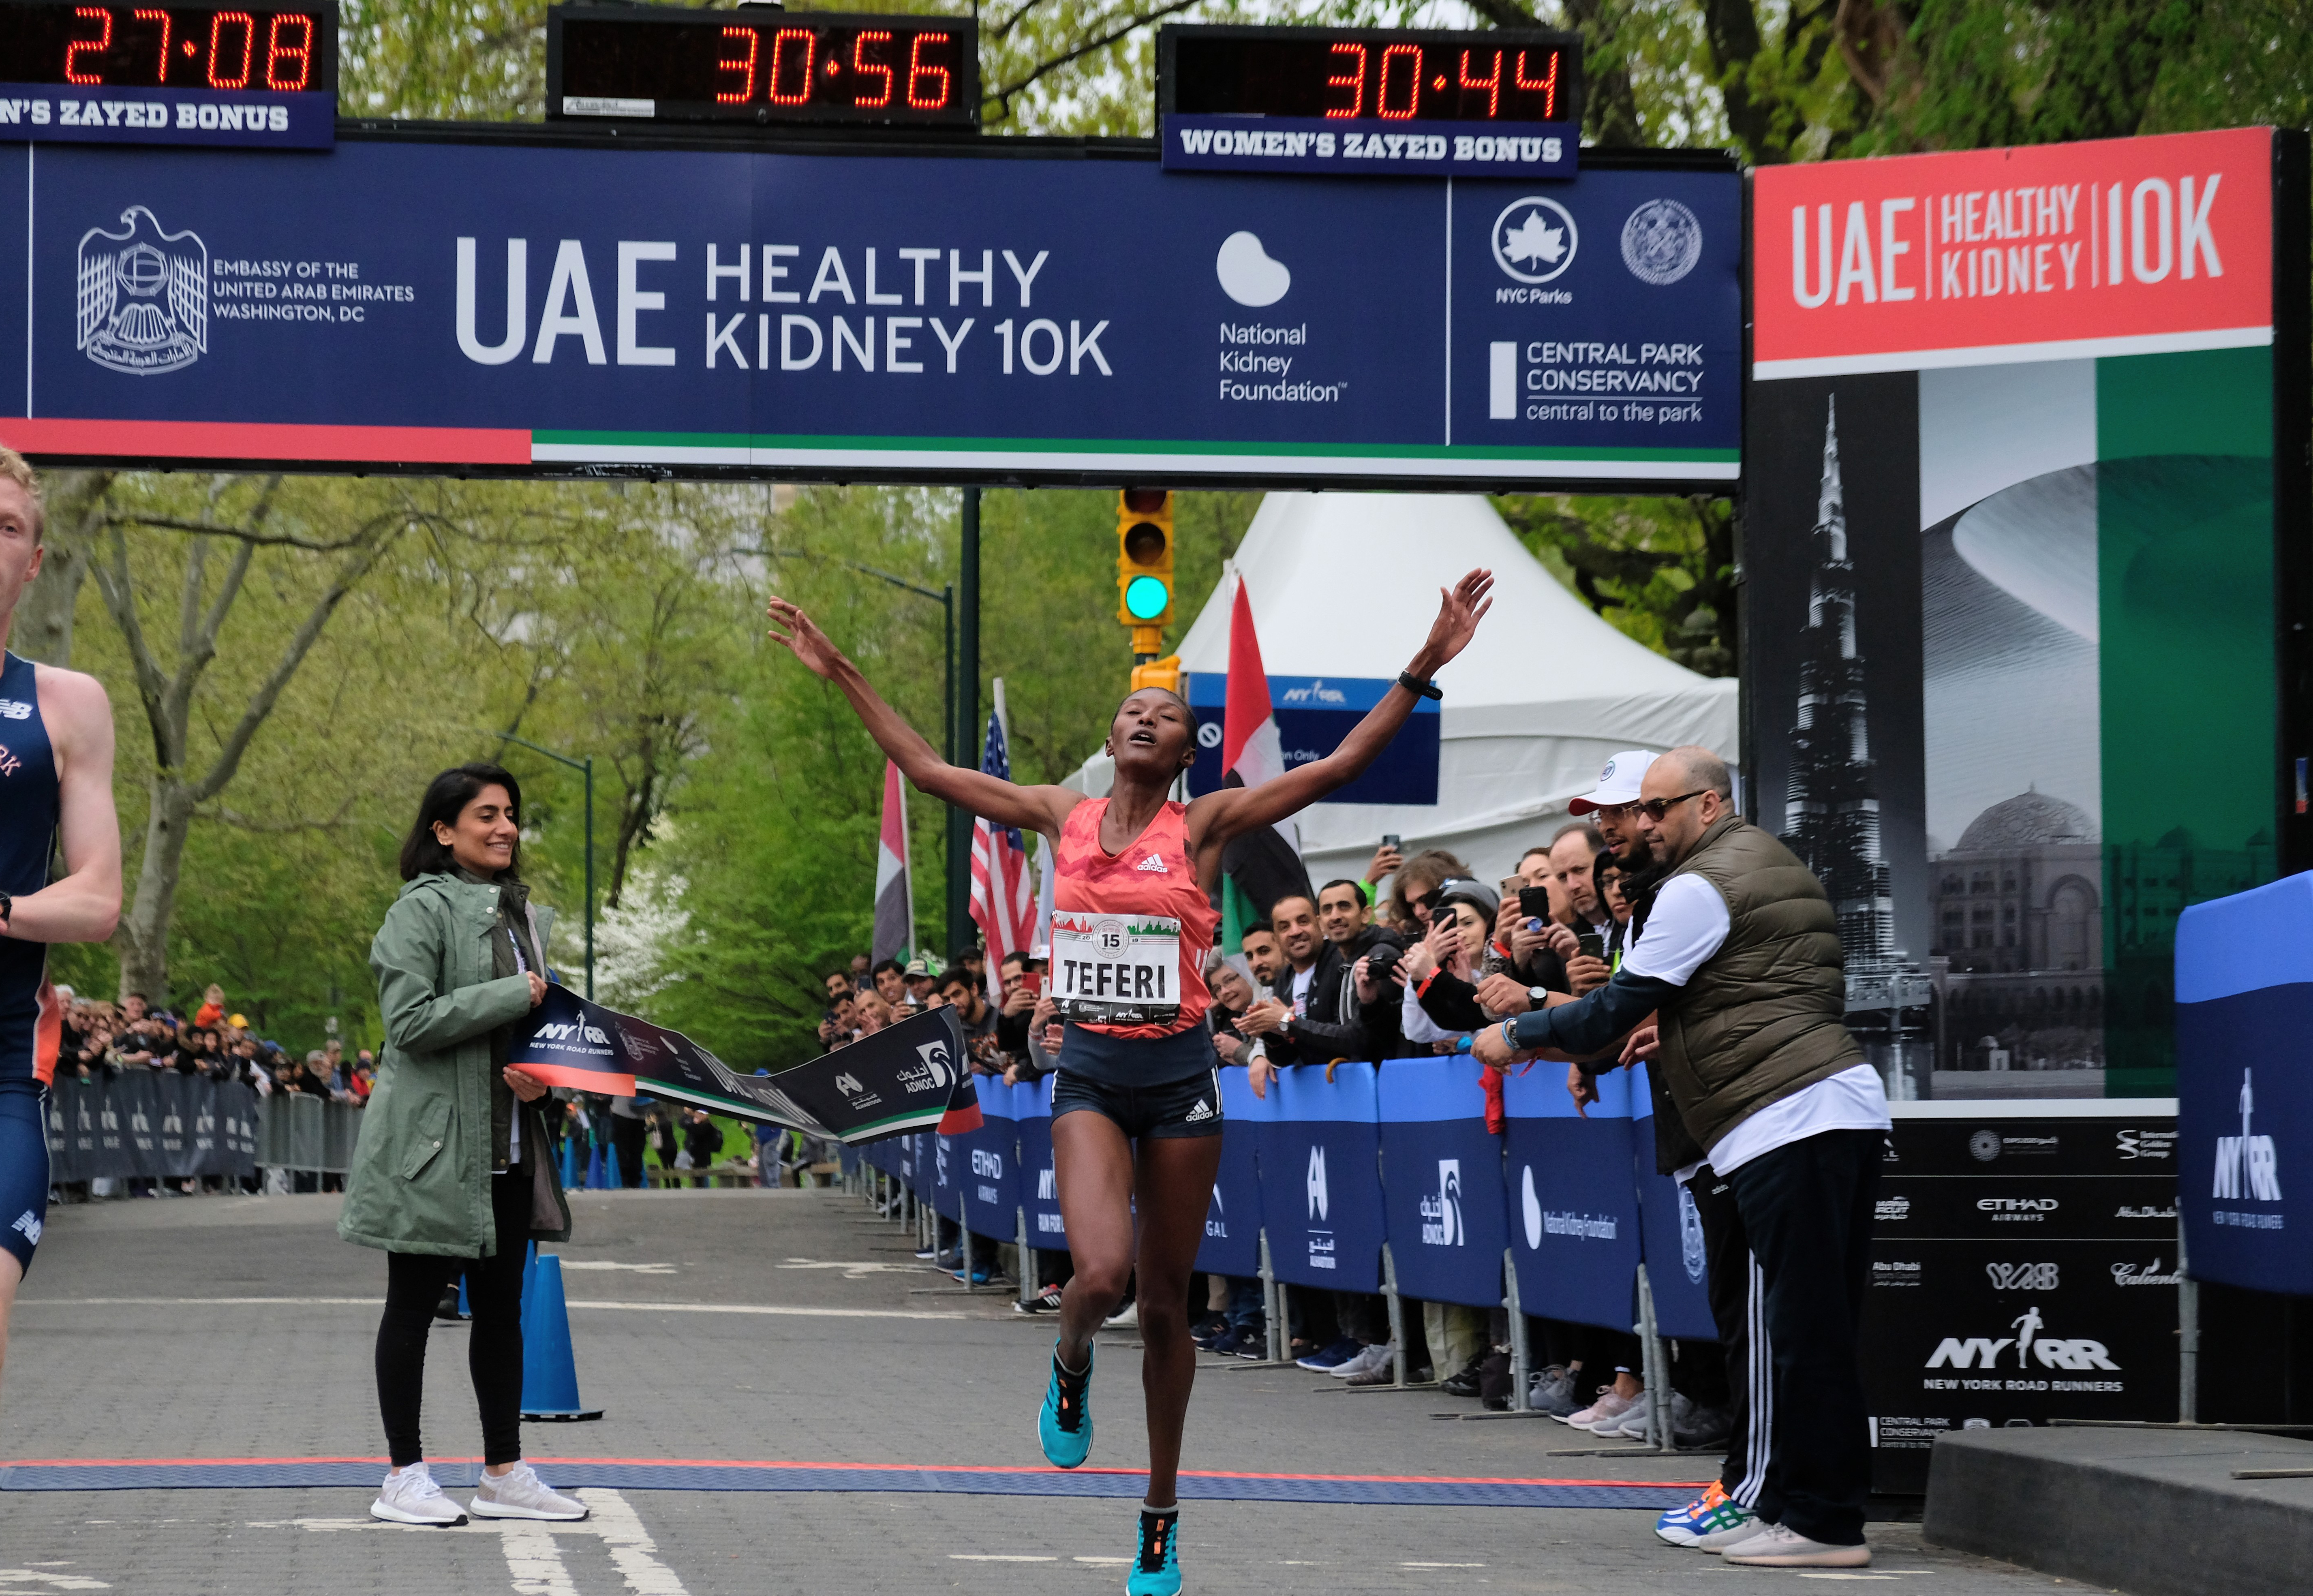 Senbere Teferi breaking the tape with a course record at the 2019 UAE Healthy Kidney 10K